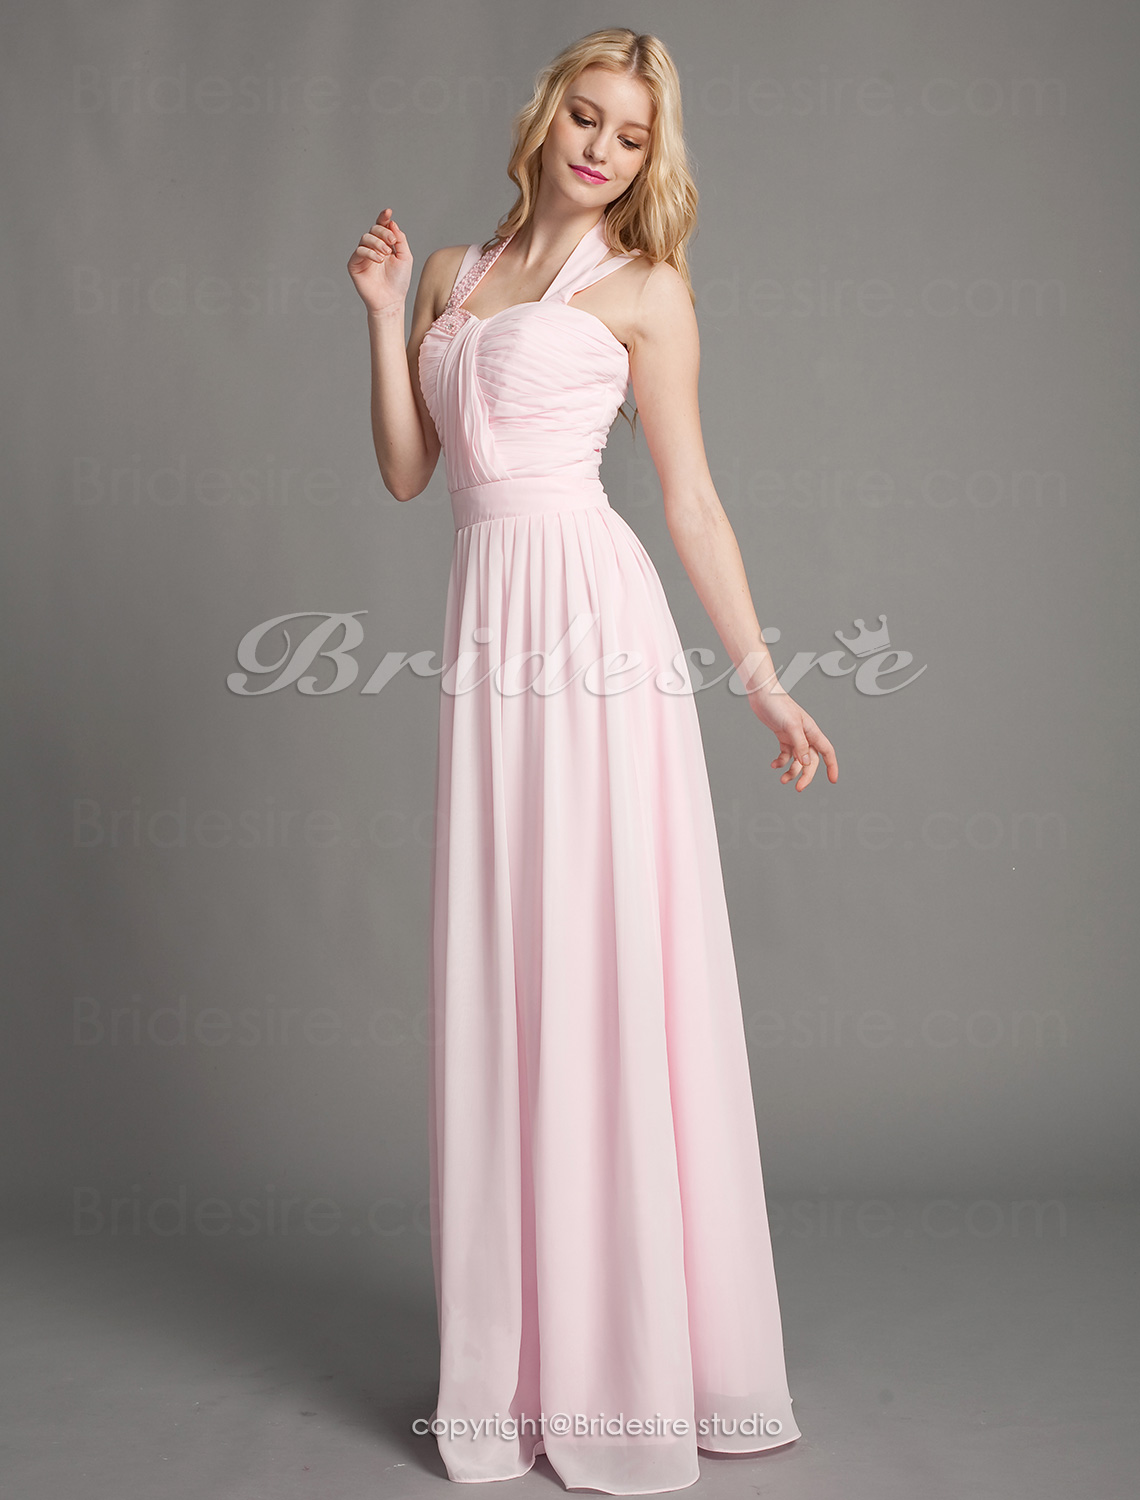 Sheath/ Column Chiffon Floor-length Halter Bridesmaid Dress